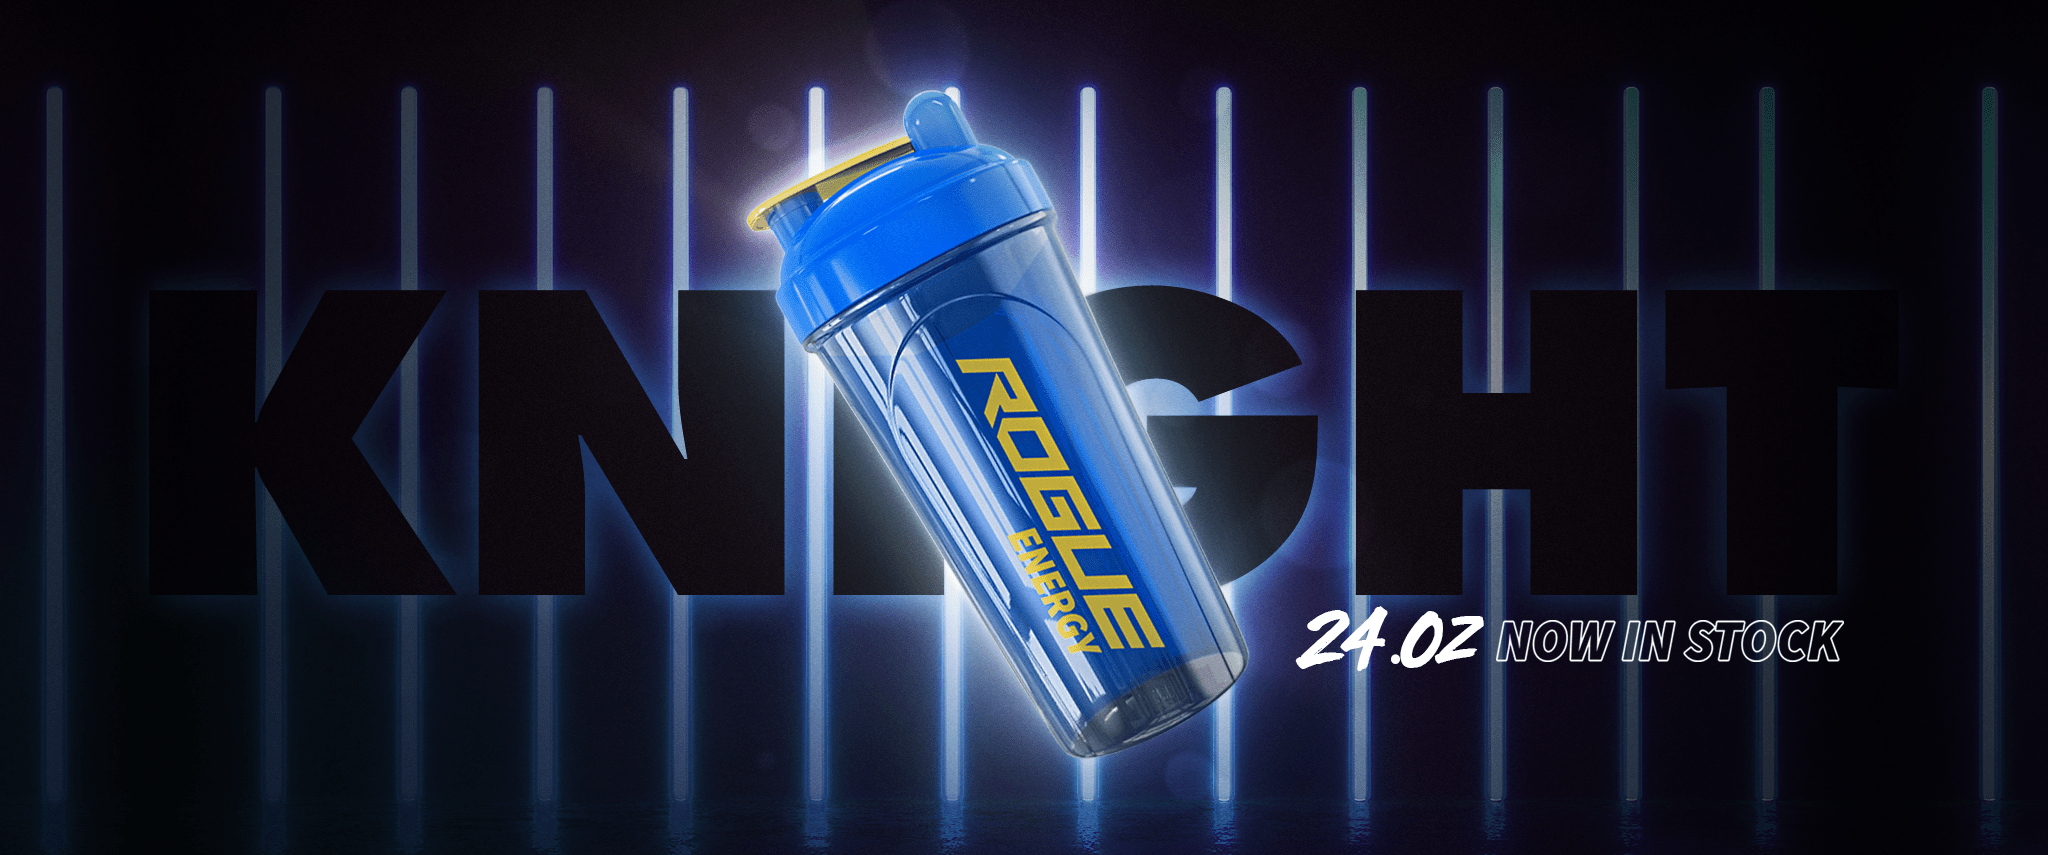 Rogue Energy Best Gaming Drink, Gaming Sponsorships